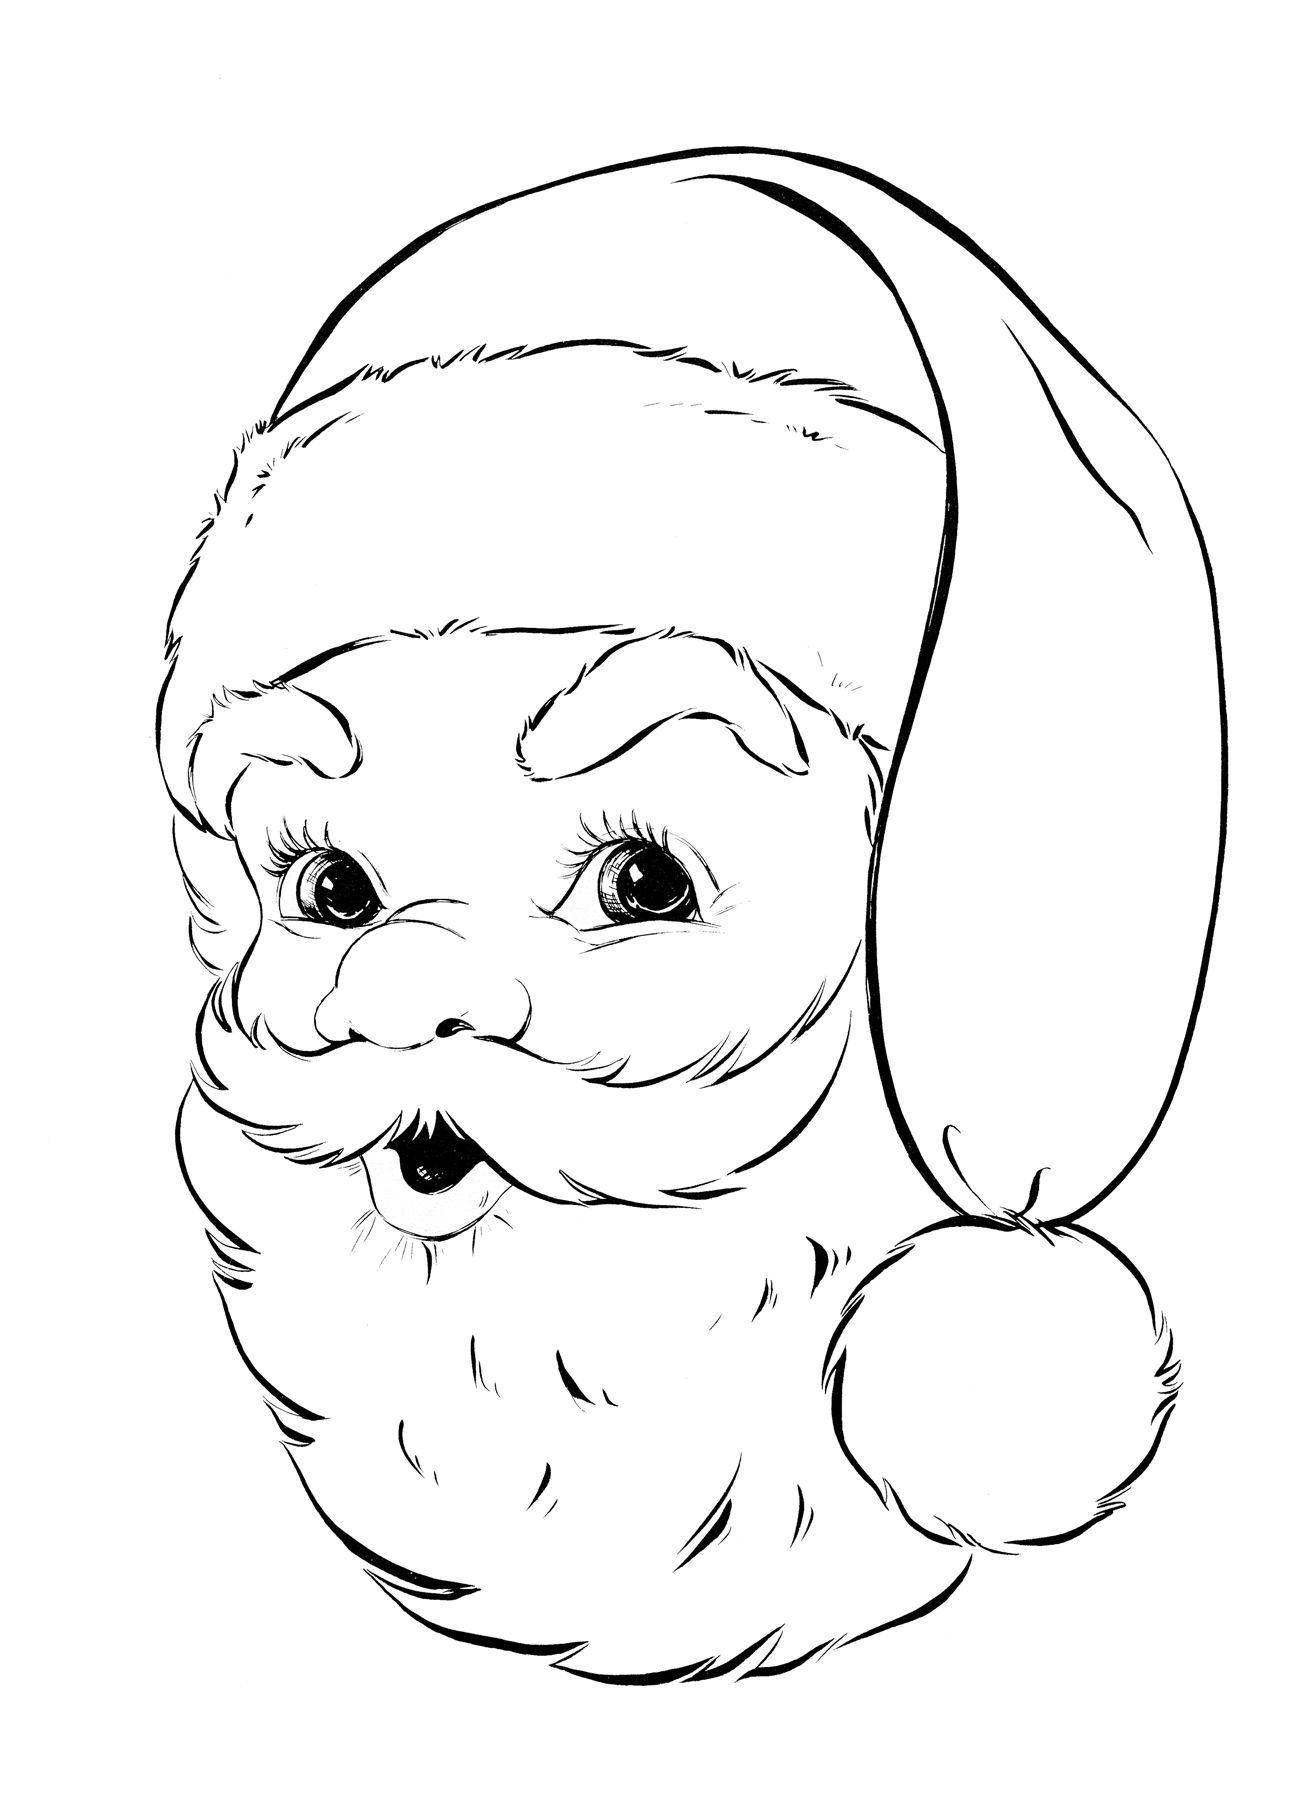 Santa Face Coloring Page Printables With 50 Free Activities For Children Digi Stamps Pinterest